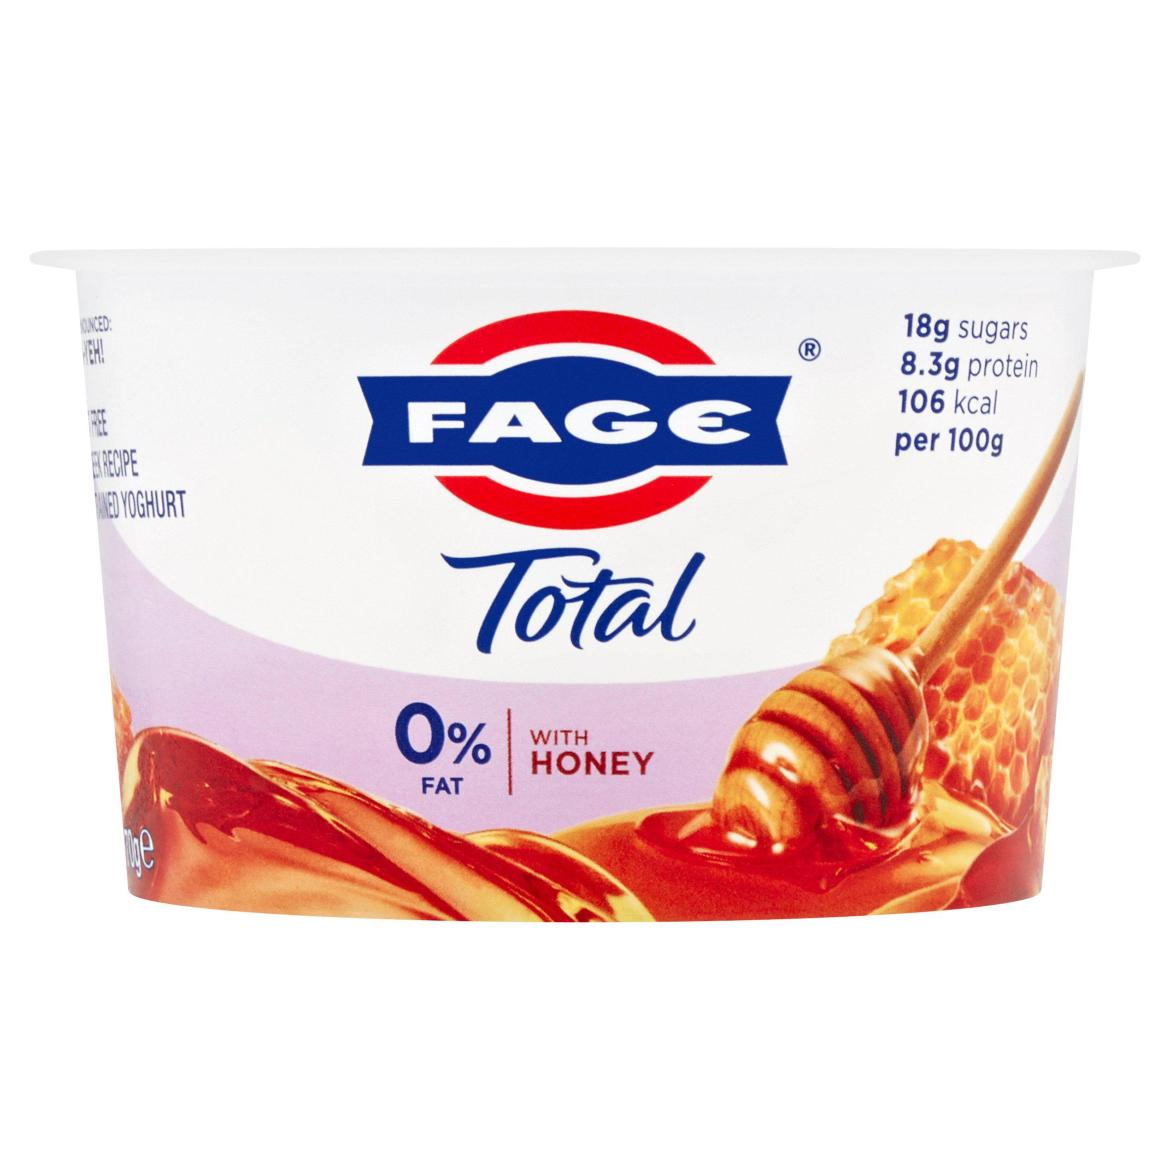 Fage Total Greek yoghurt split pots with honey are just 55p at Sainsbury's